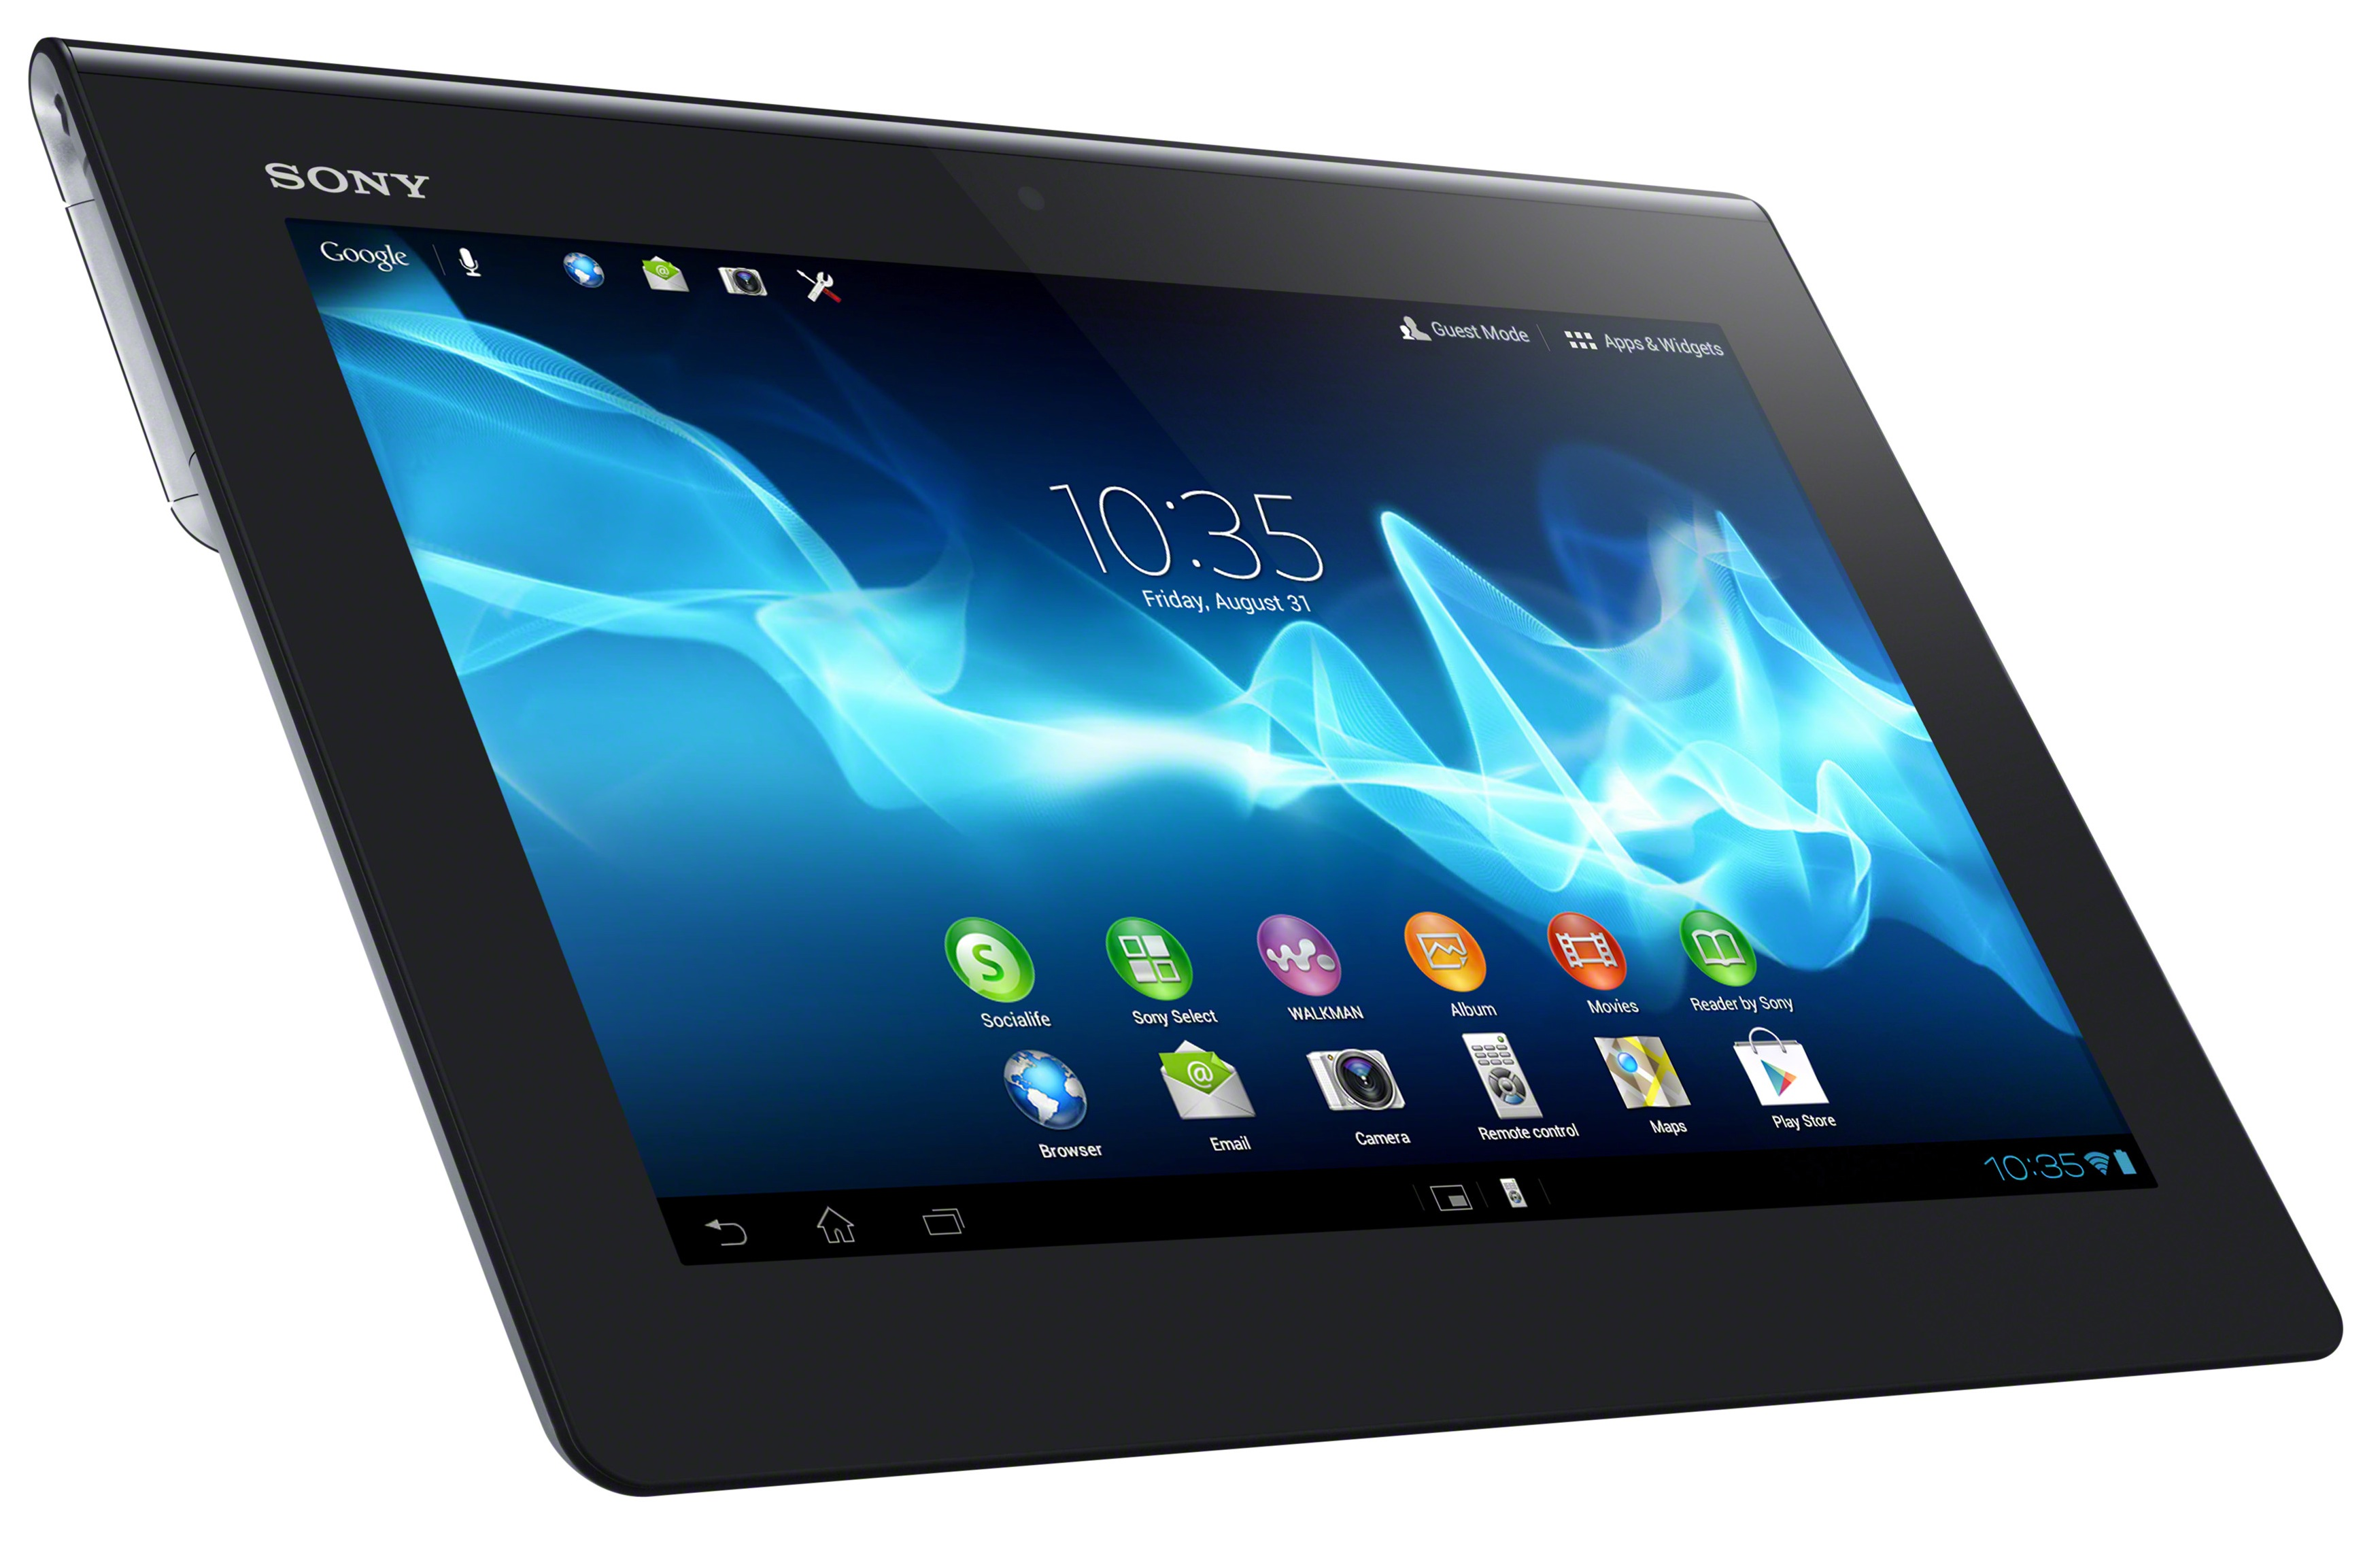 Enlarge / the xperia tablet s measures 9.45&; x 0.35-0.47&; x 6.87&; and